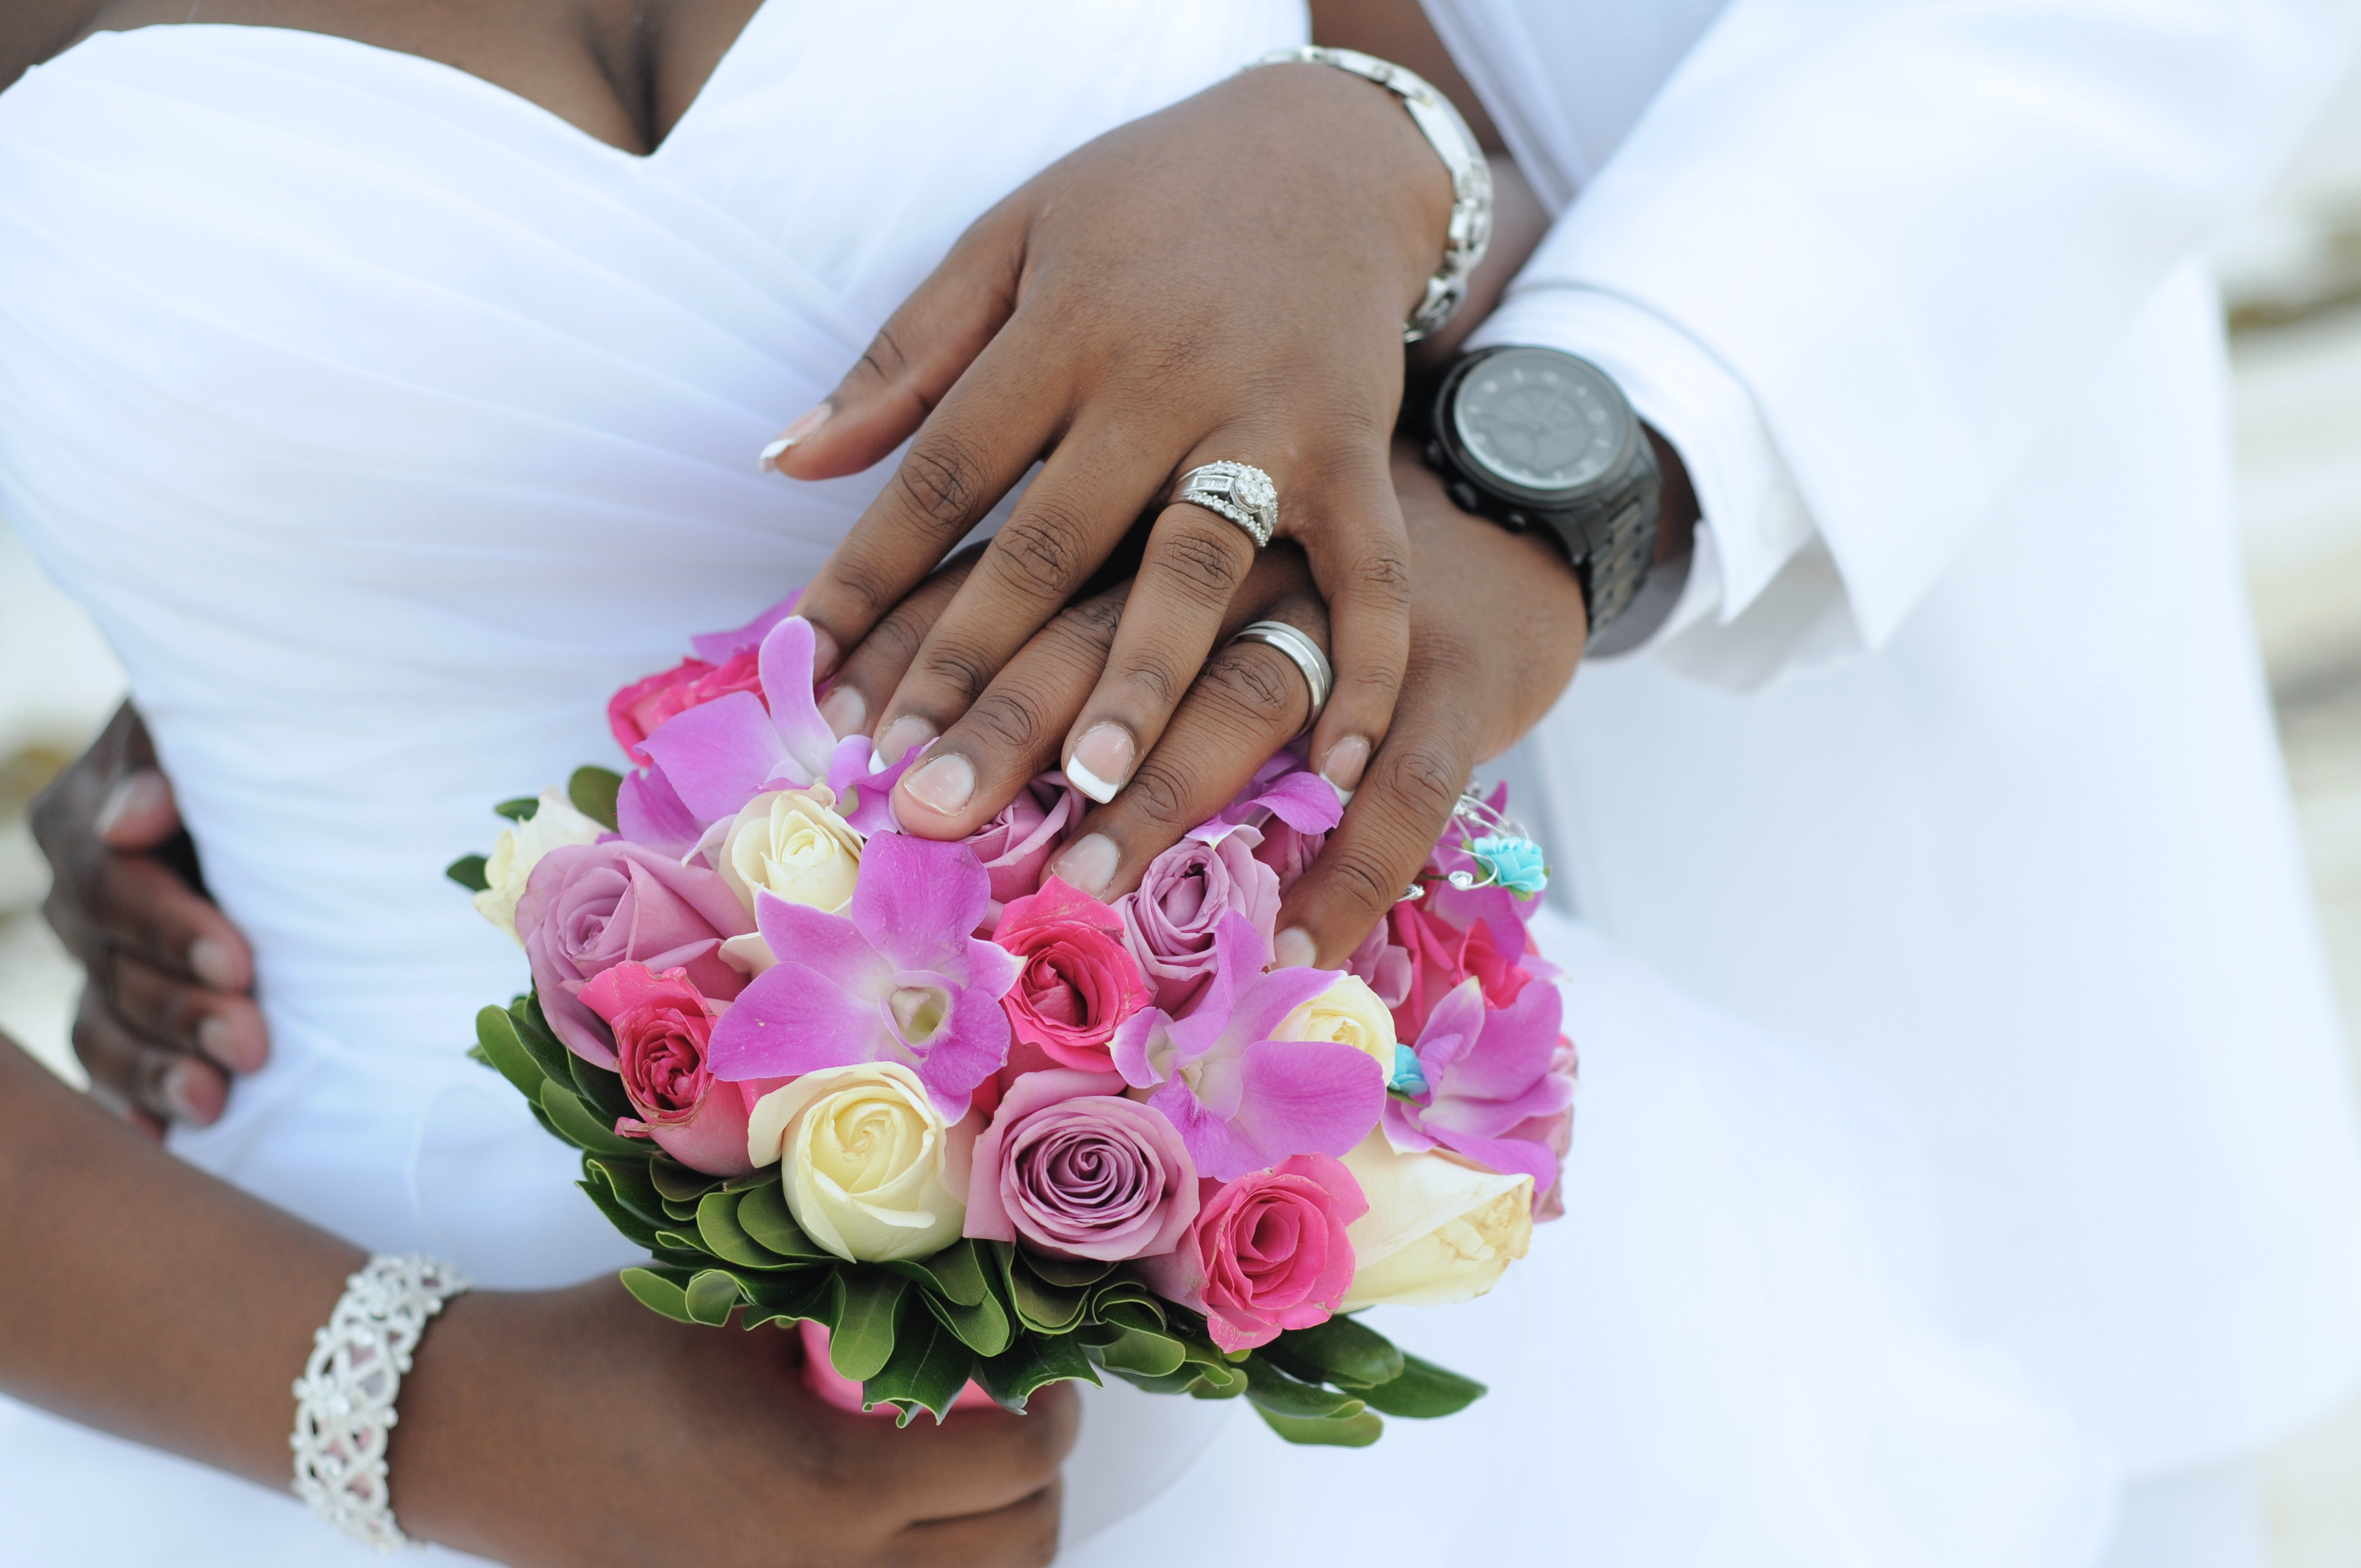 Bride and groom put their hands together on wedding bouquet